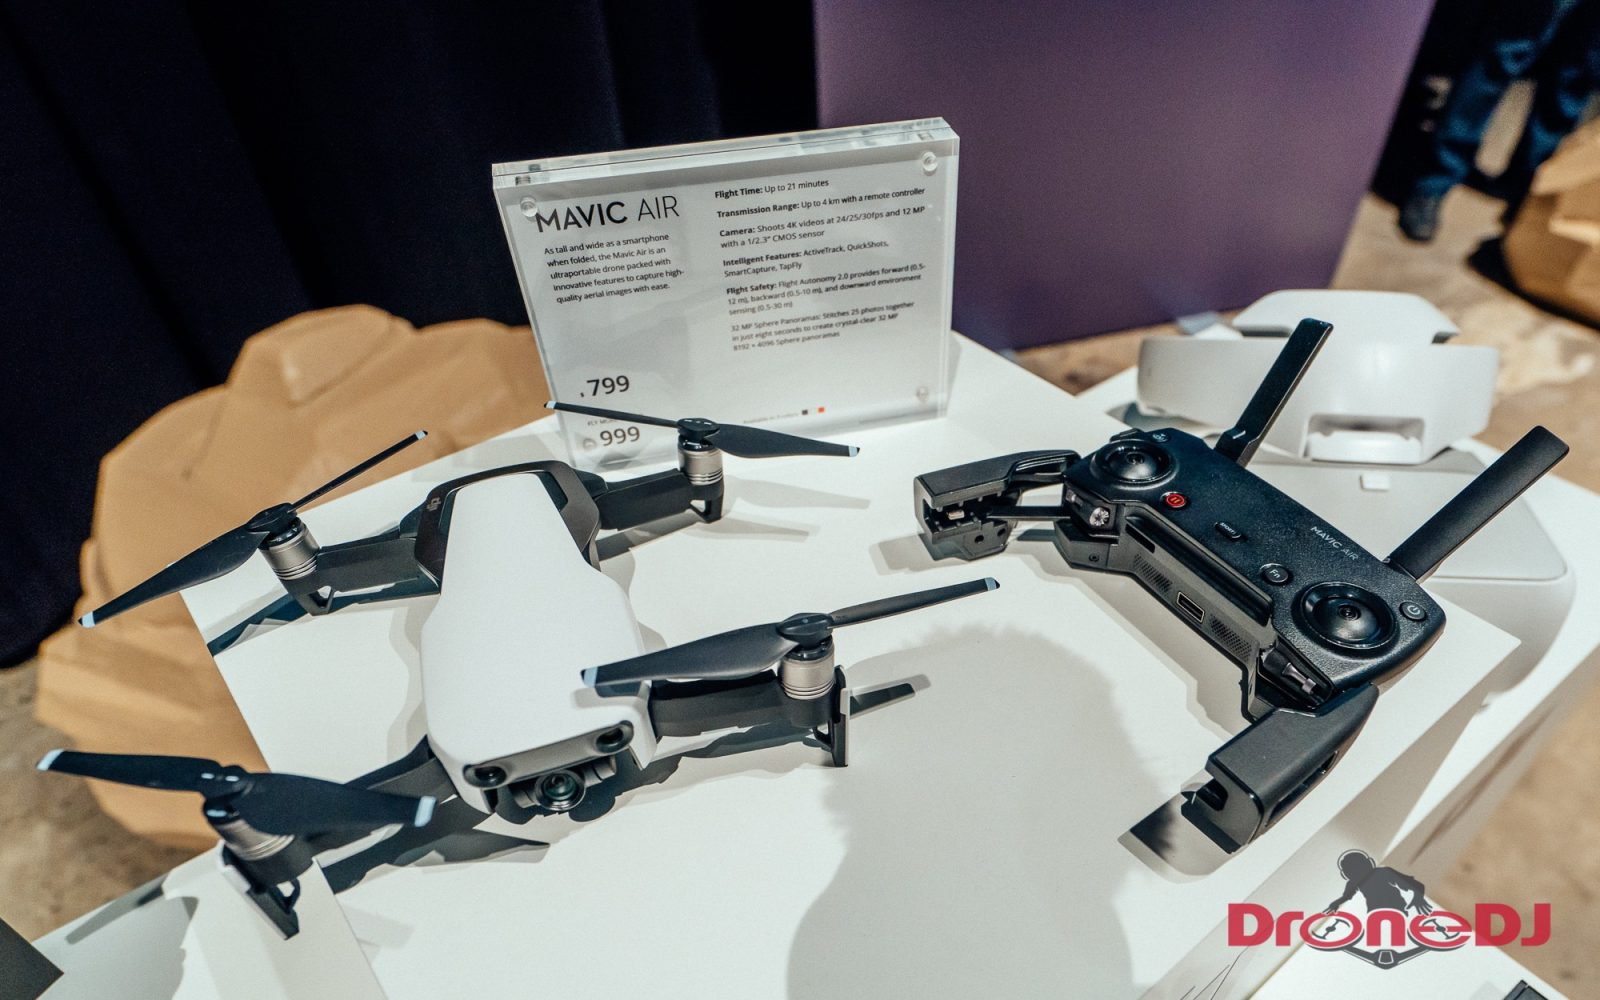 ded67f98081 On January 23rd, 2018, DJI introduced their all-new DJI Mavic Air during an  event in New York City. The Mavic Air currently is DJI's smallest, most  portable ...